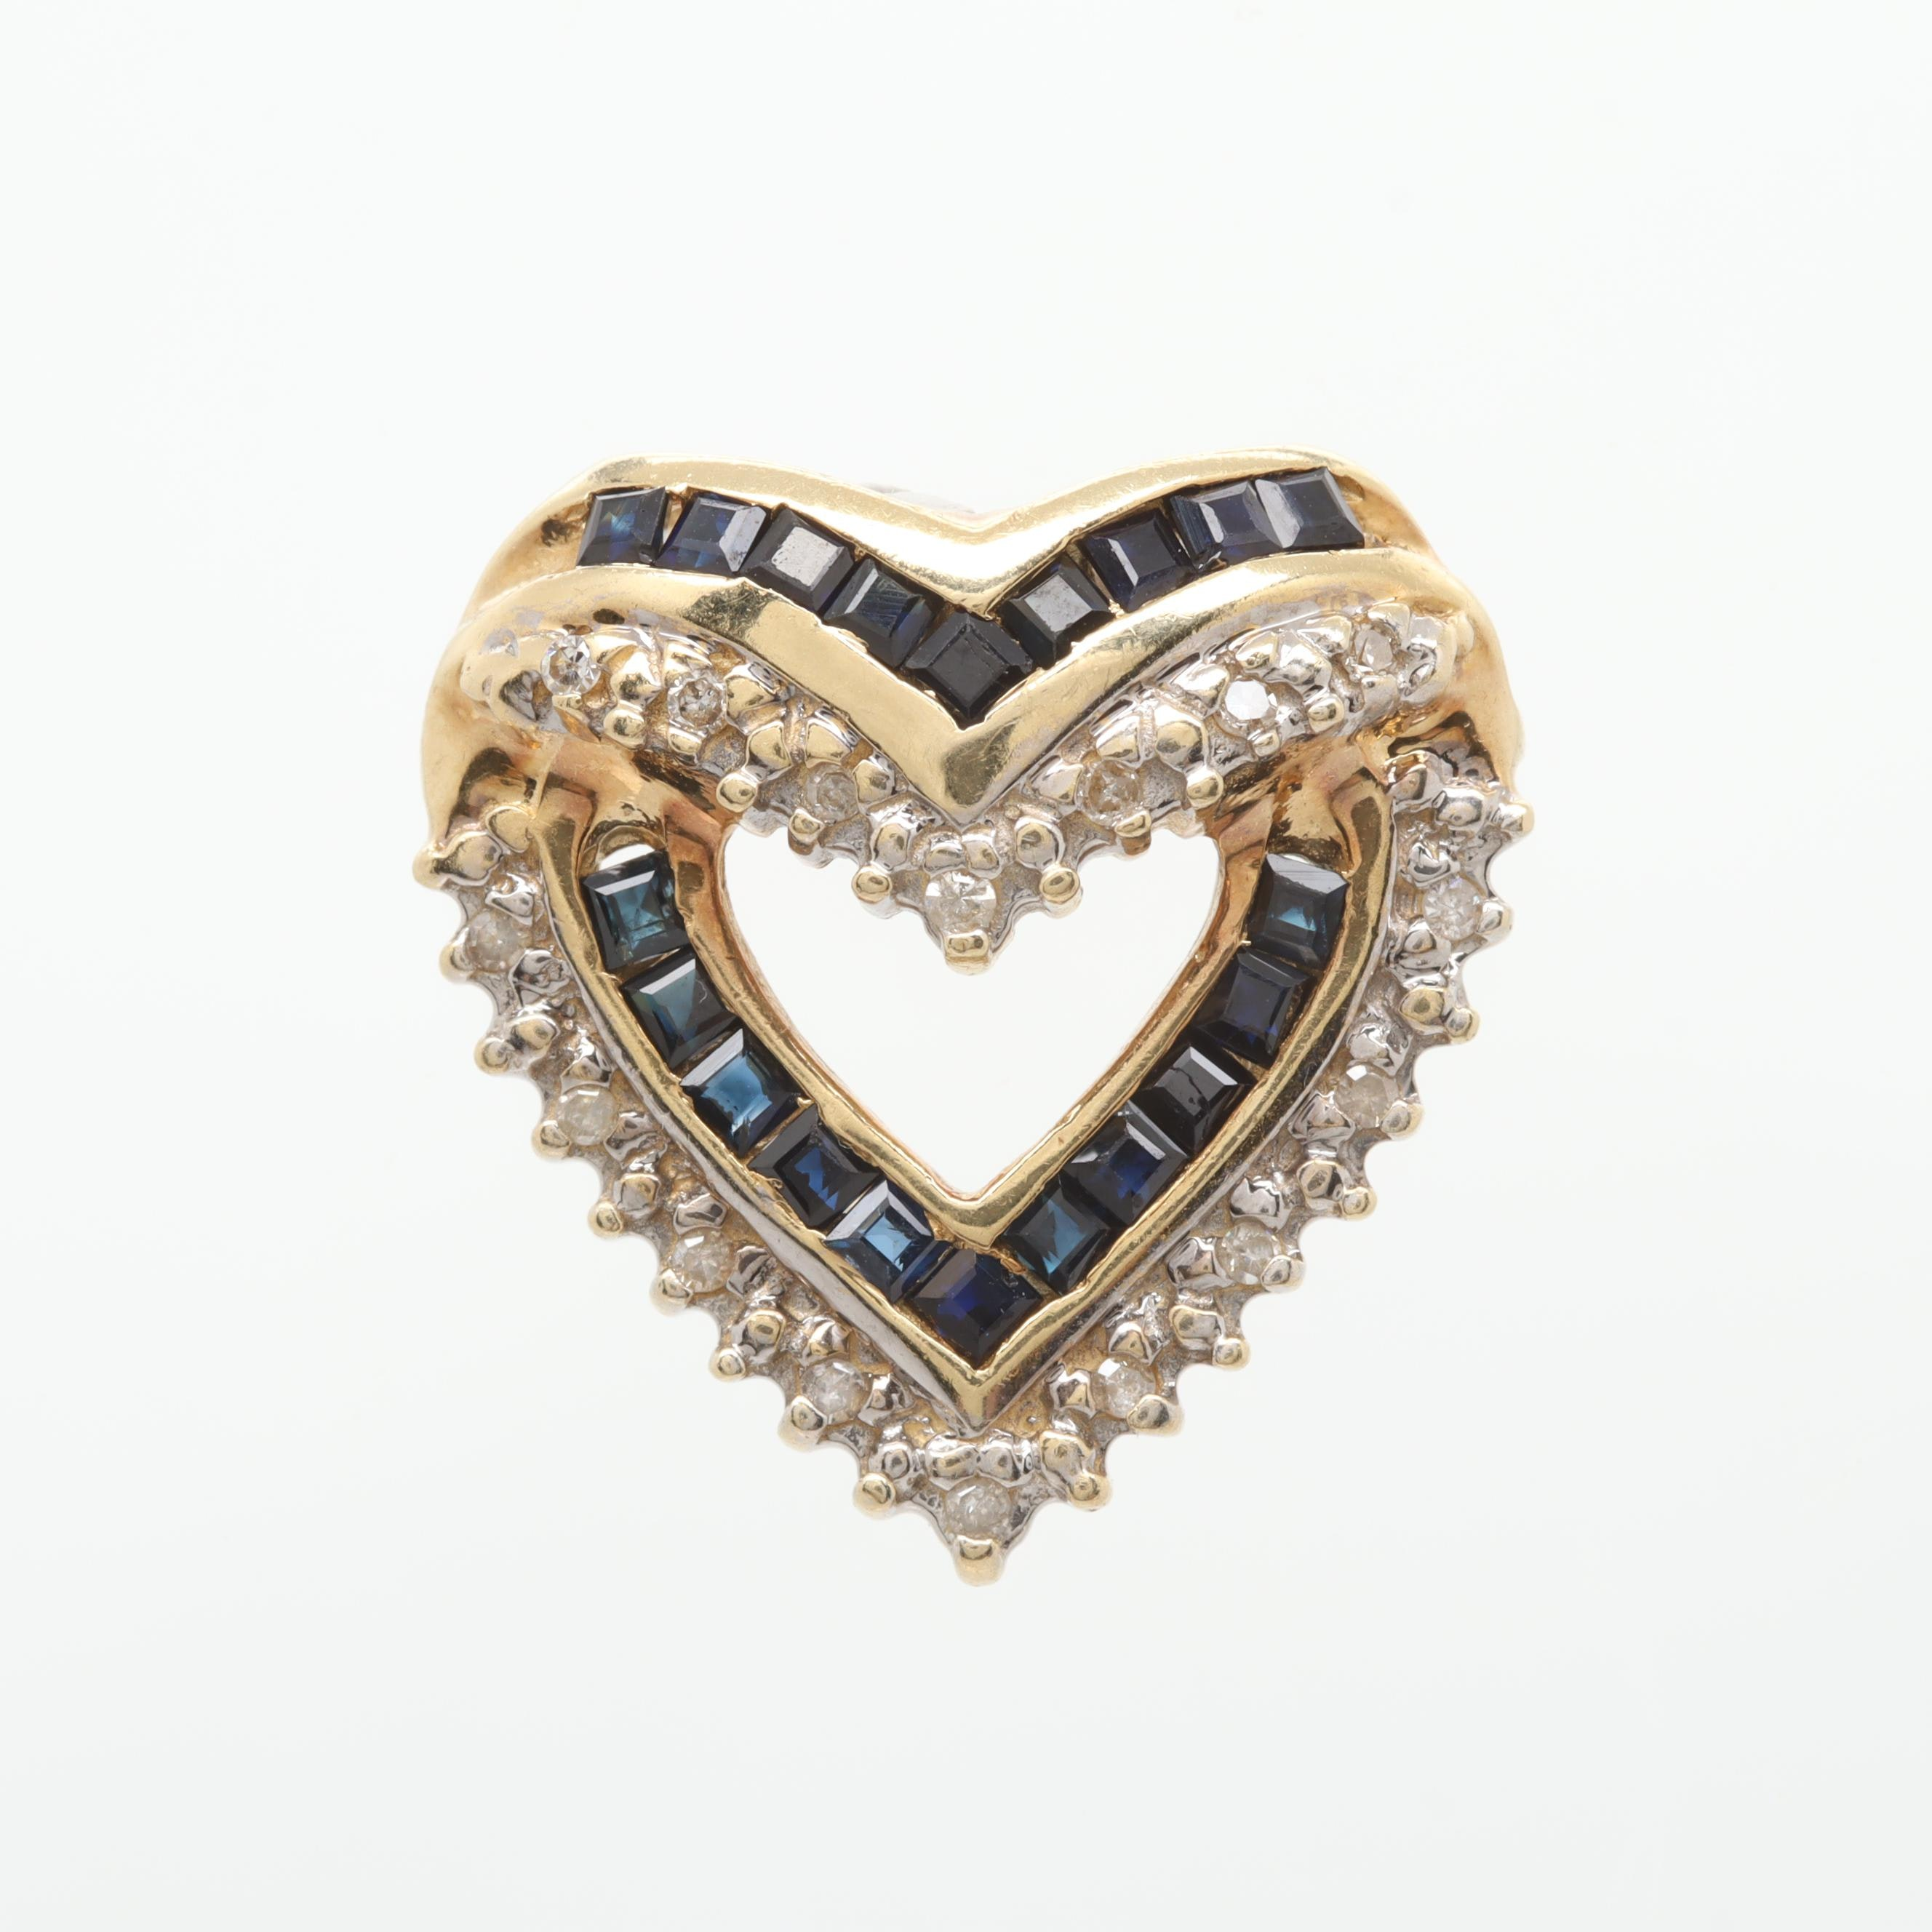 14K Yellow Gold Diamond and Sapphire Heart Slide Pendant